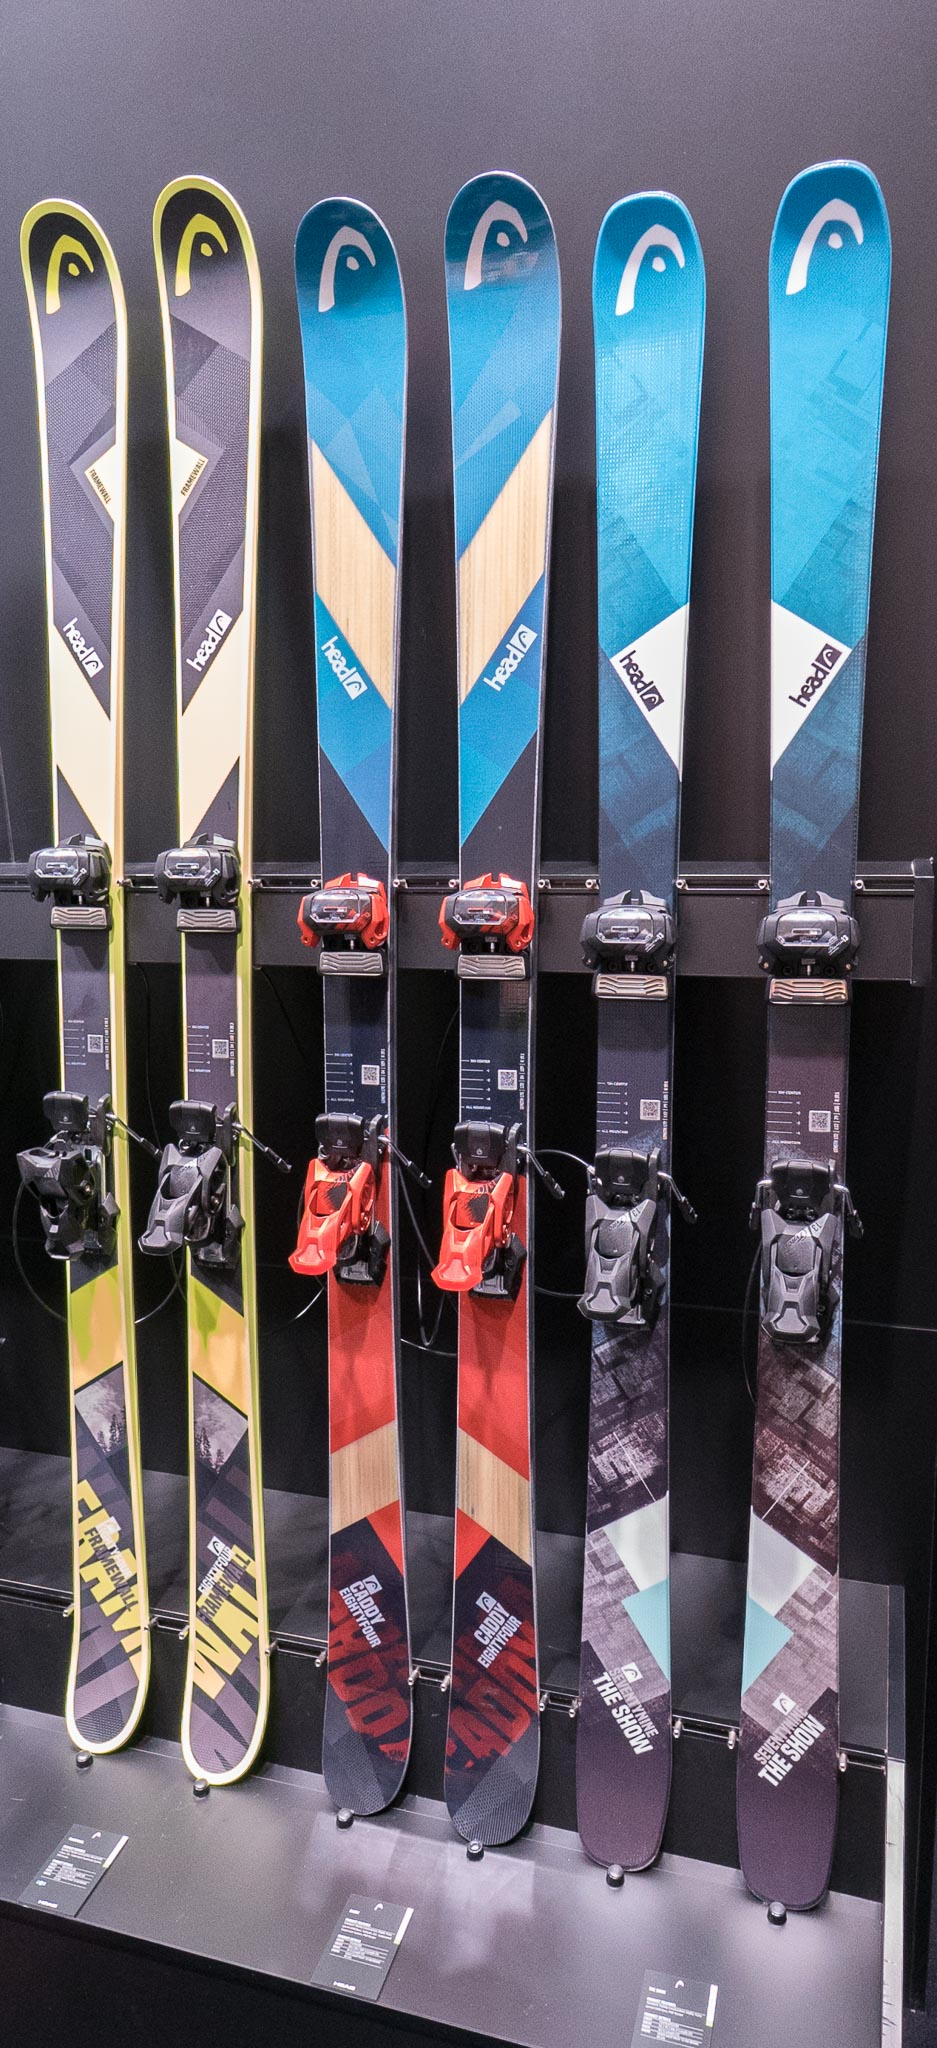 ispo 2018 ski highlights seite 9 von 18 prime skiing. Black Bedroom Furniture Sets. Home Design Ideas